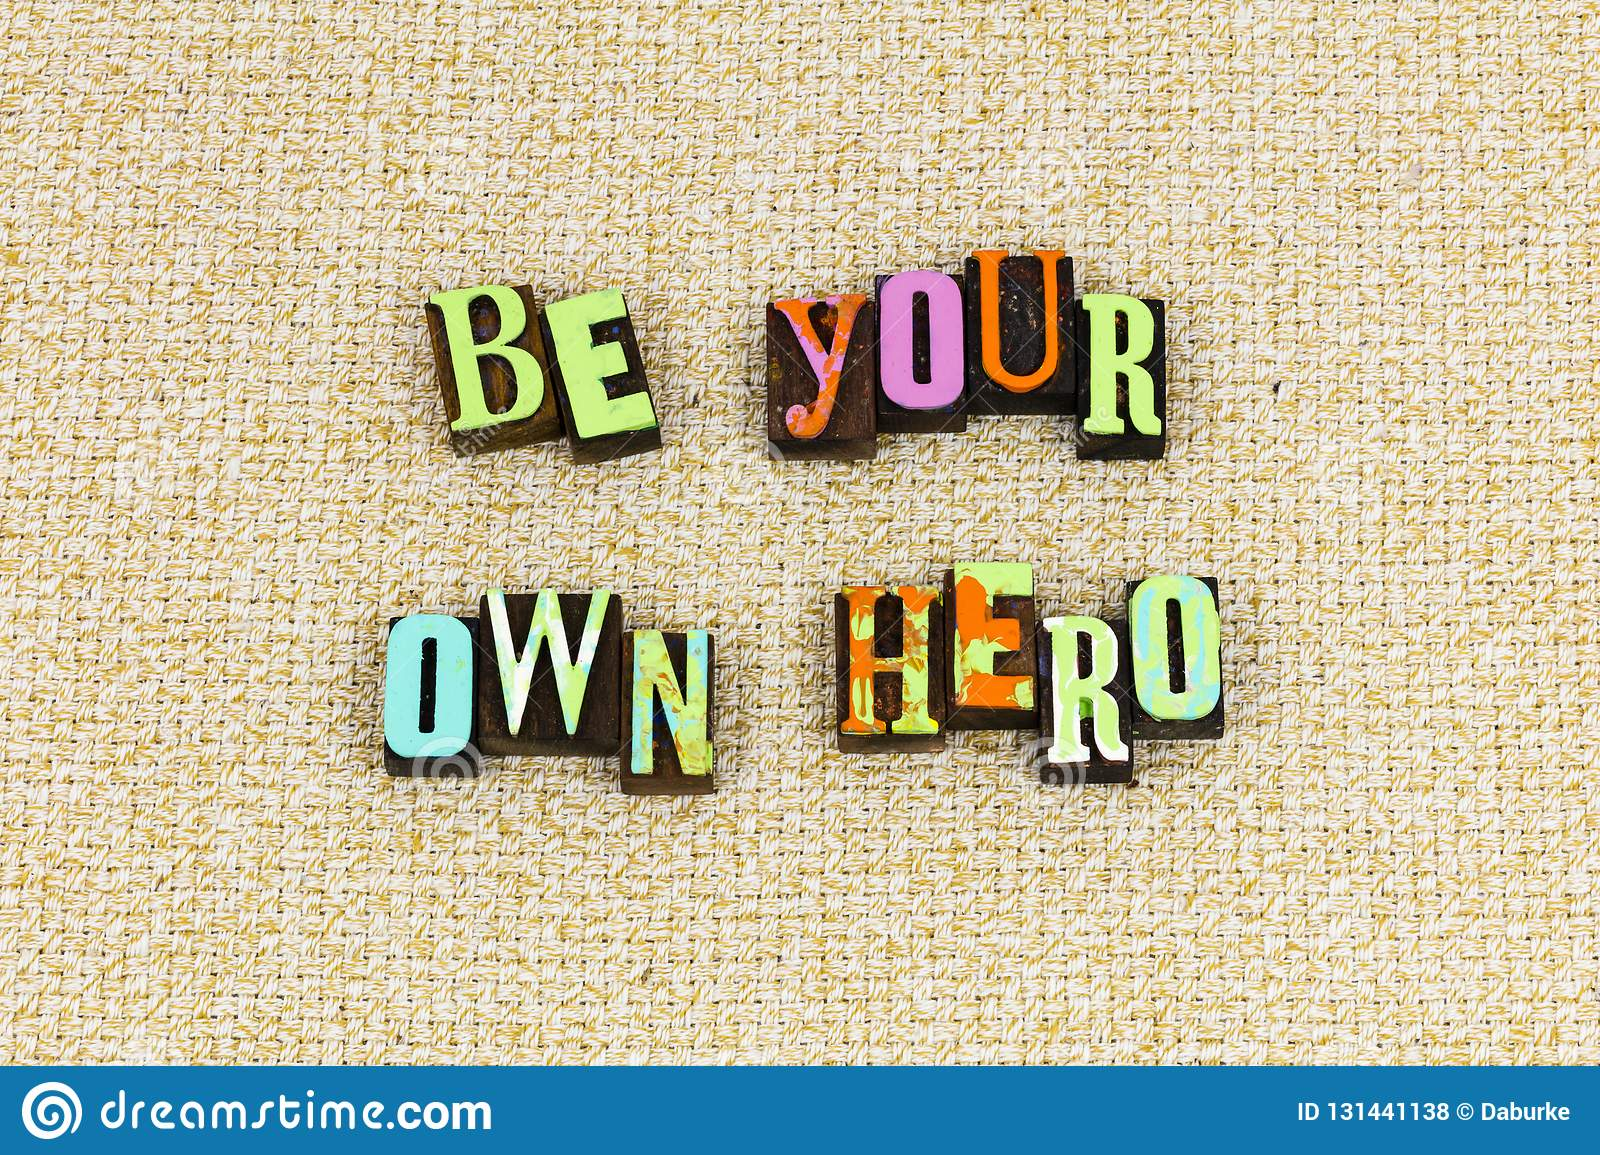 Your own hero dreams courage